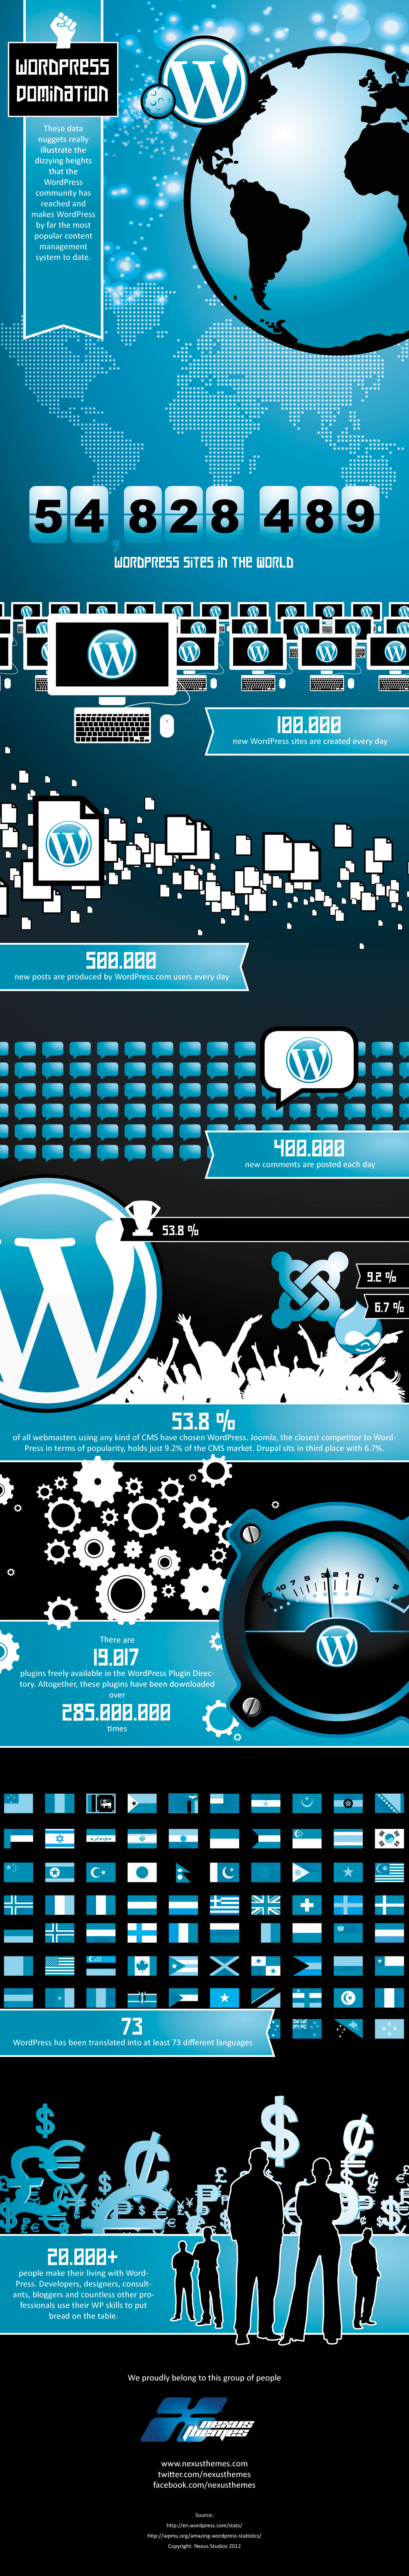 wordpress-domination_506e5d5791368